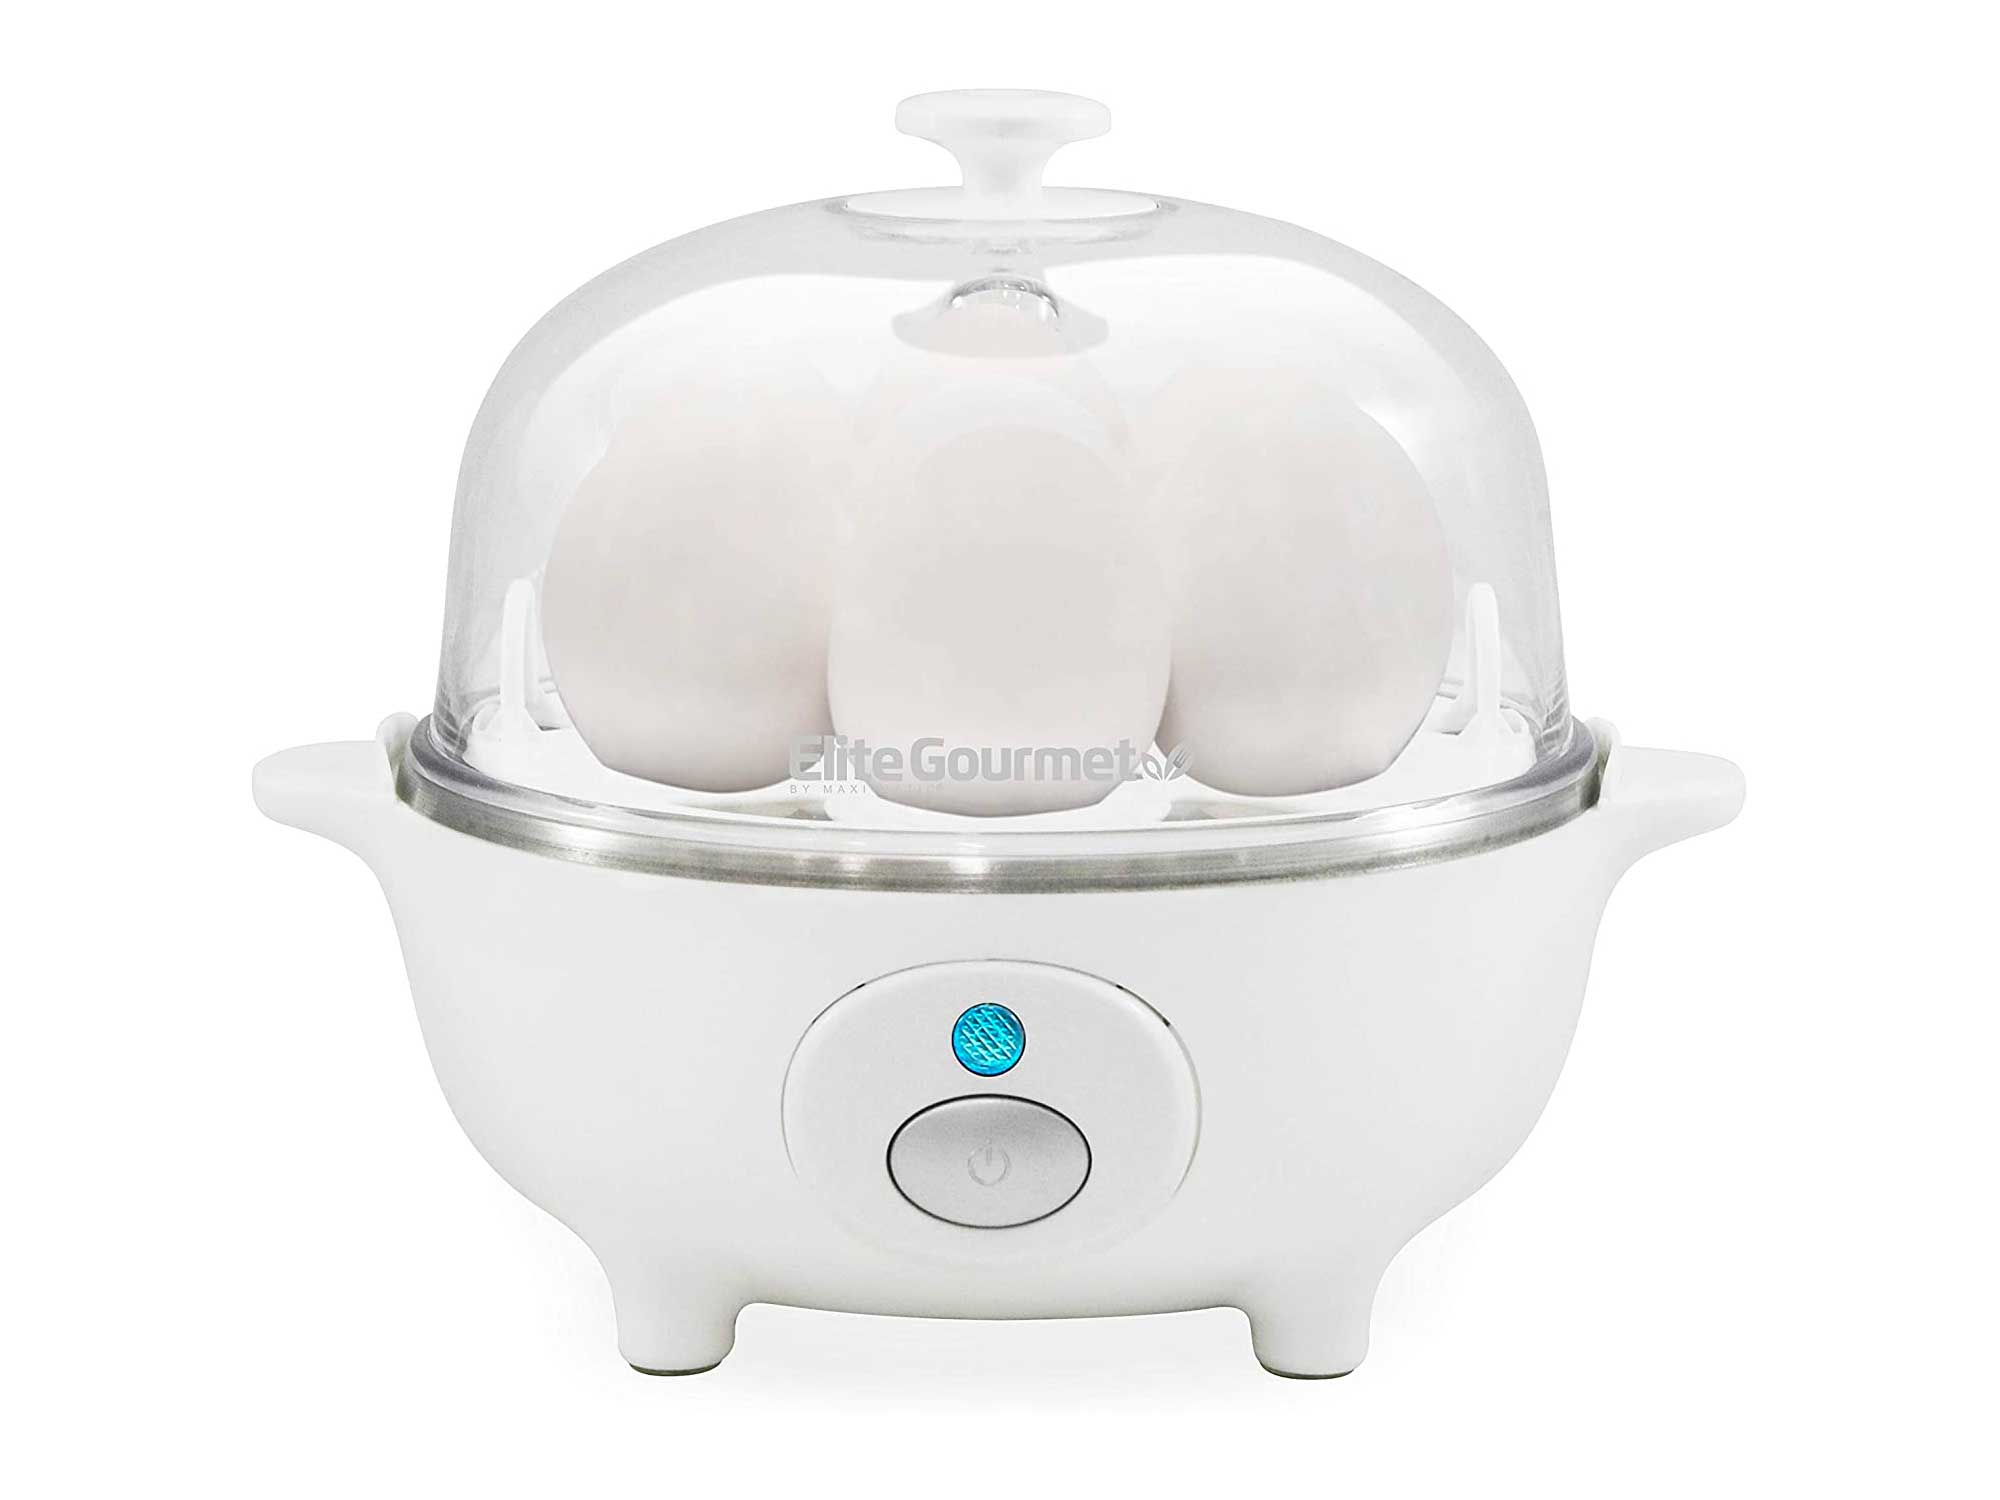 Elite Gourmet Easy Electric Poacher, Omelet Eggs & Soft, Medium, Hard-Boiled Egg Boiler Cooker with Auto Shut-Off and Buzzer, Measuring Cup Included, BPA Free, 7, White